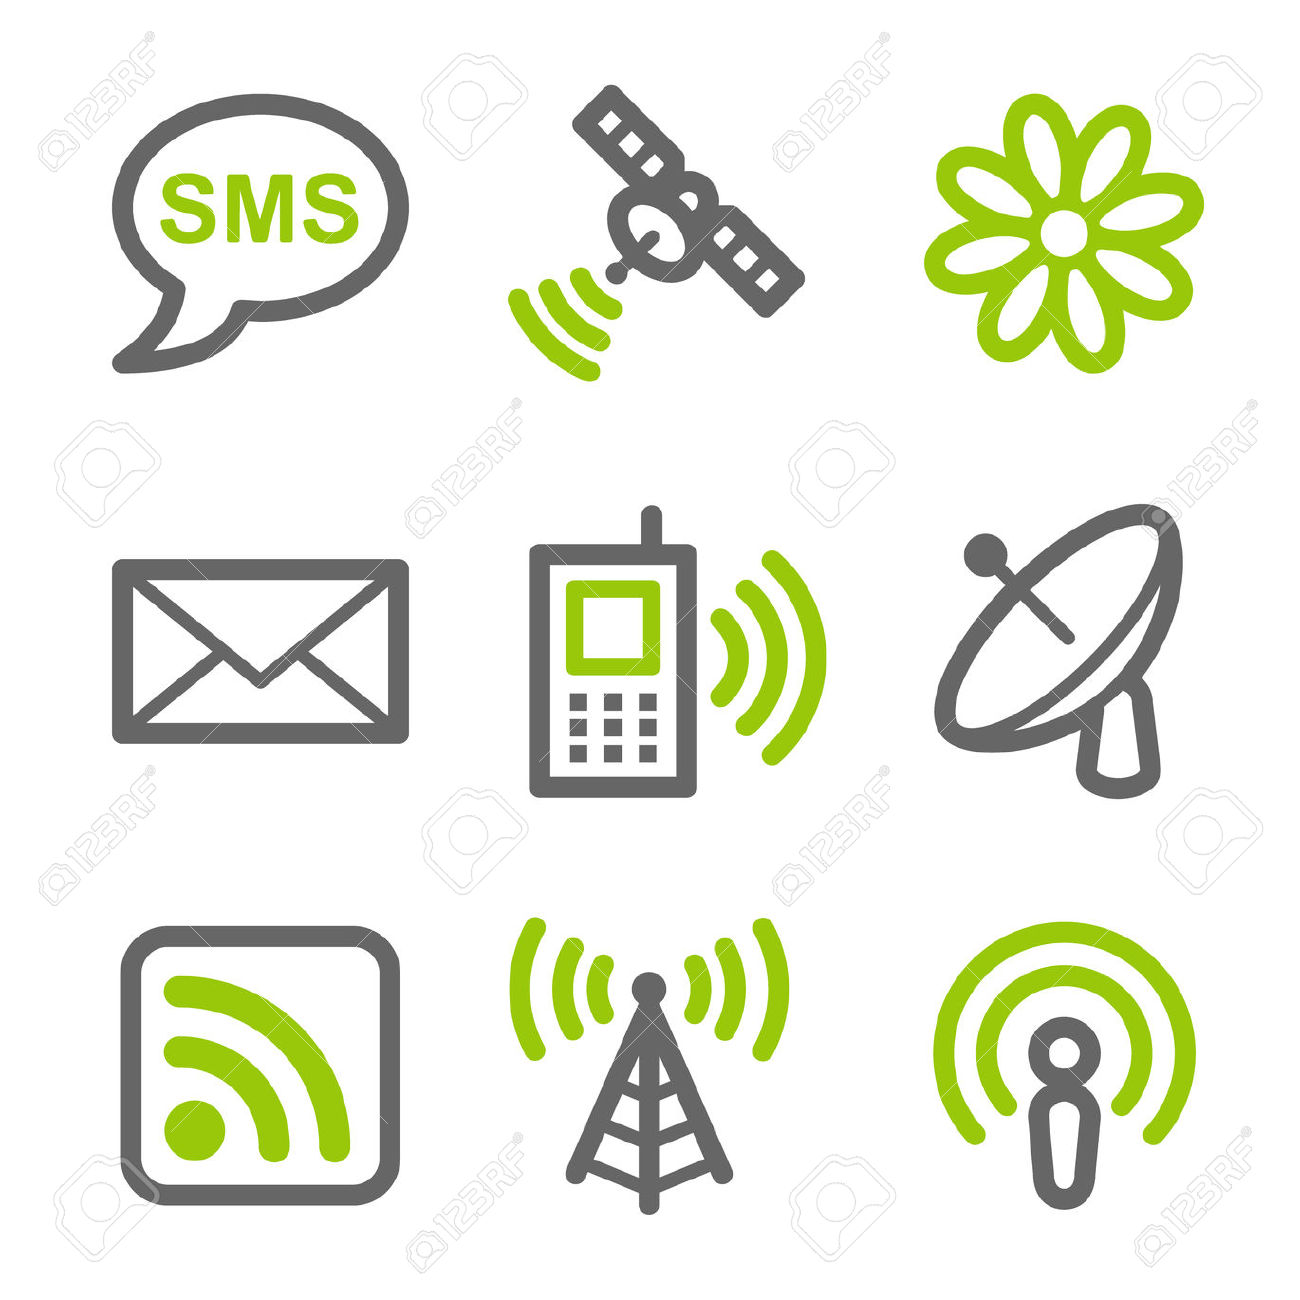 Antenne gsm clipart.